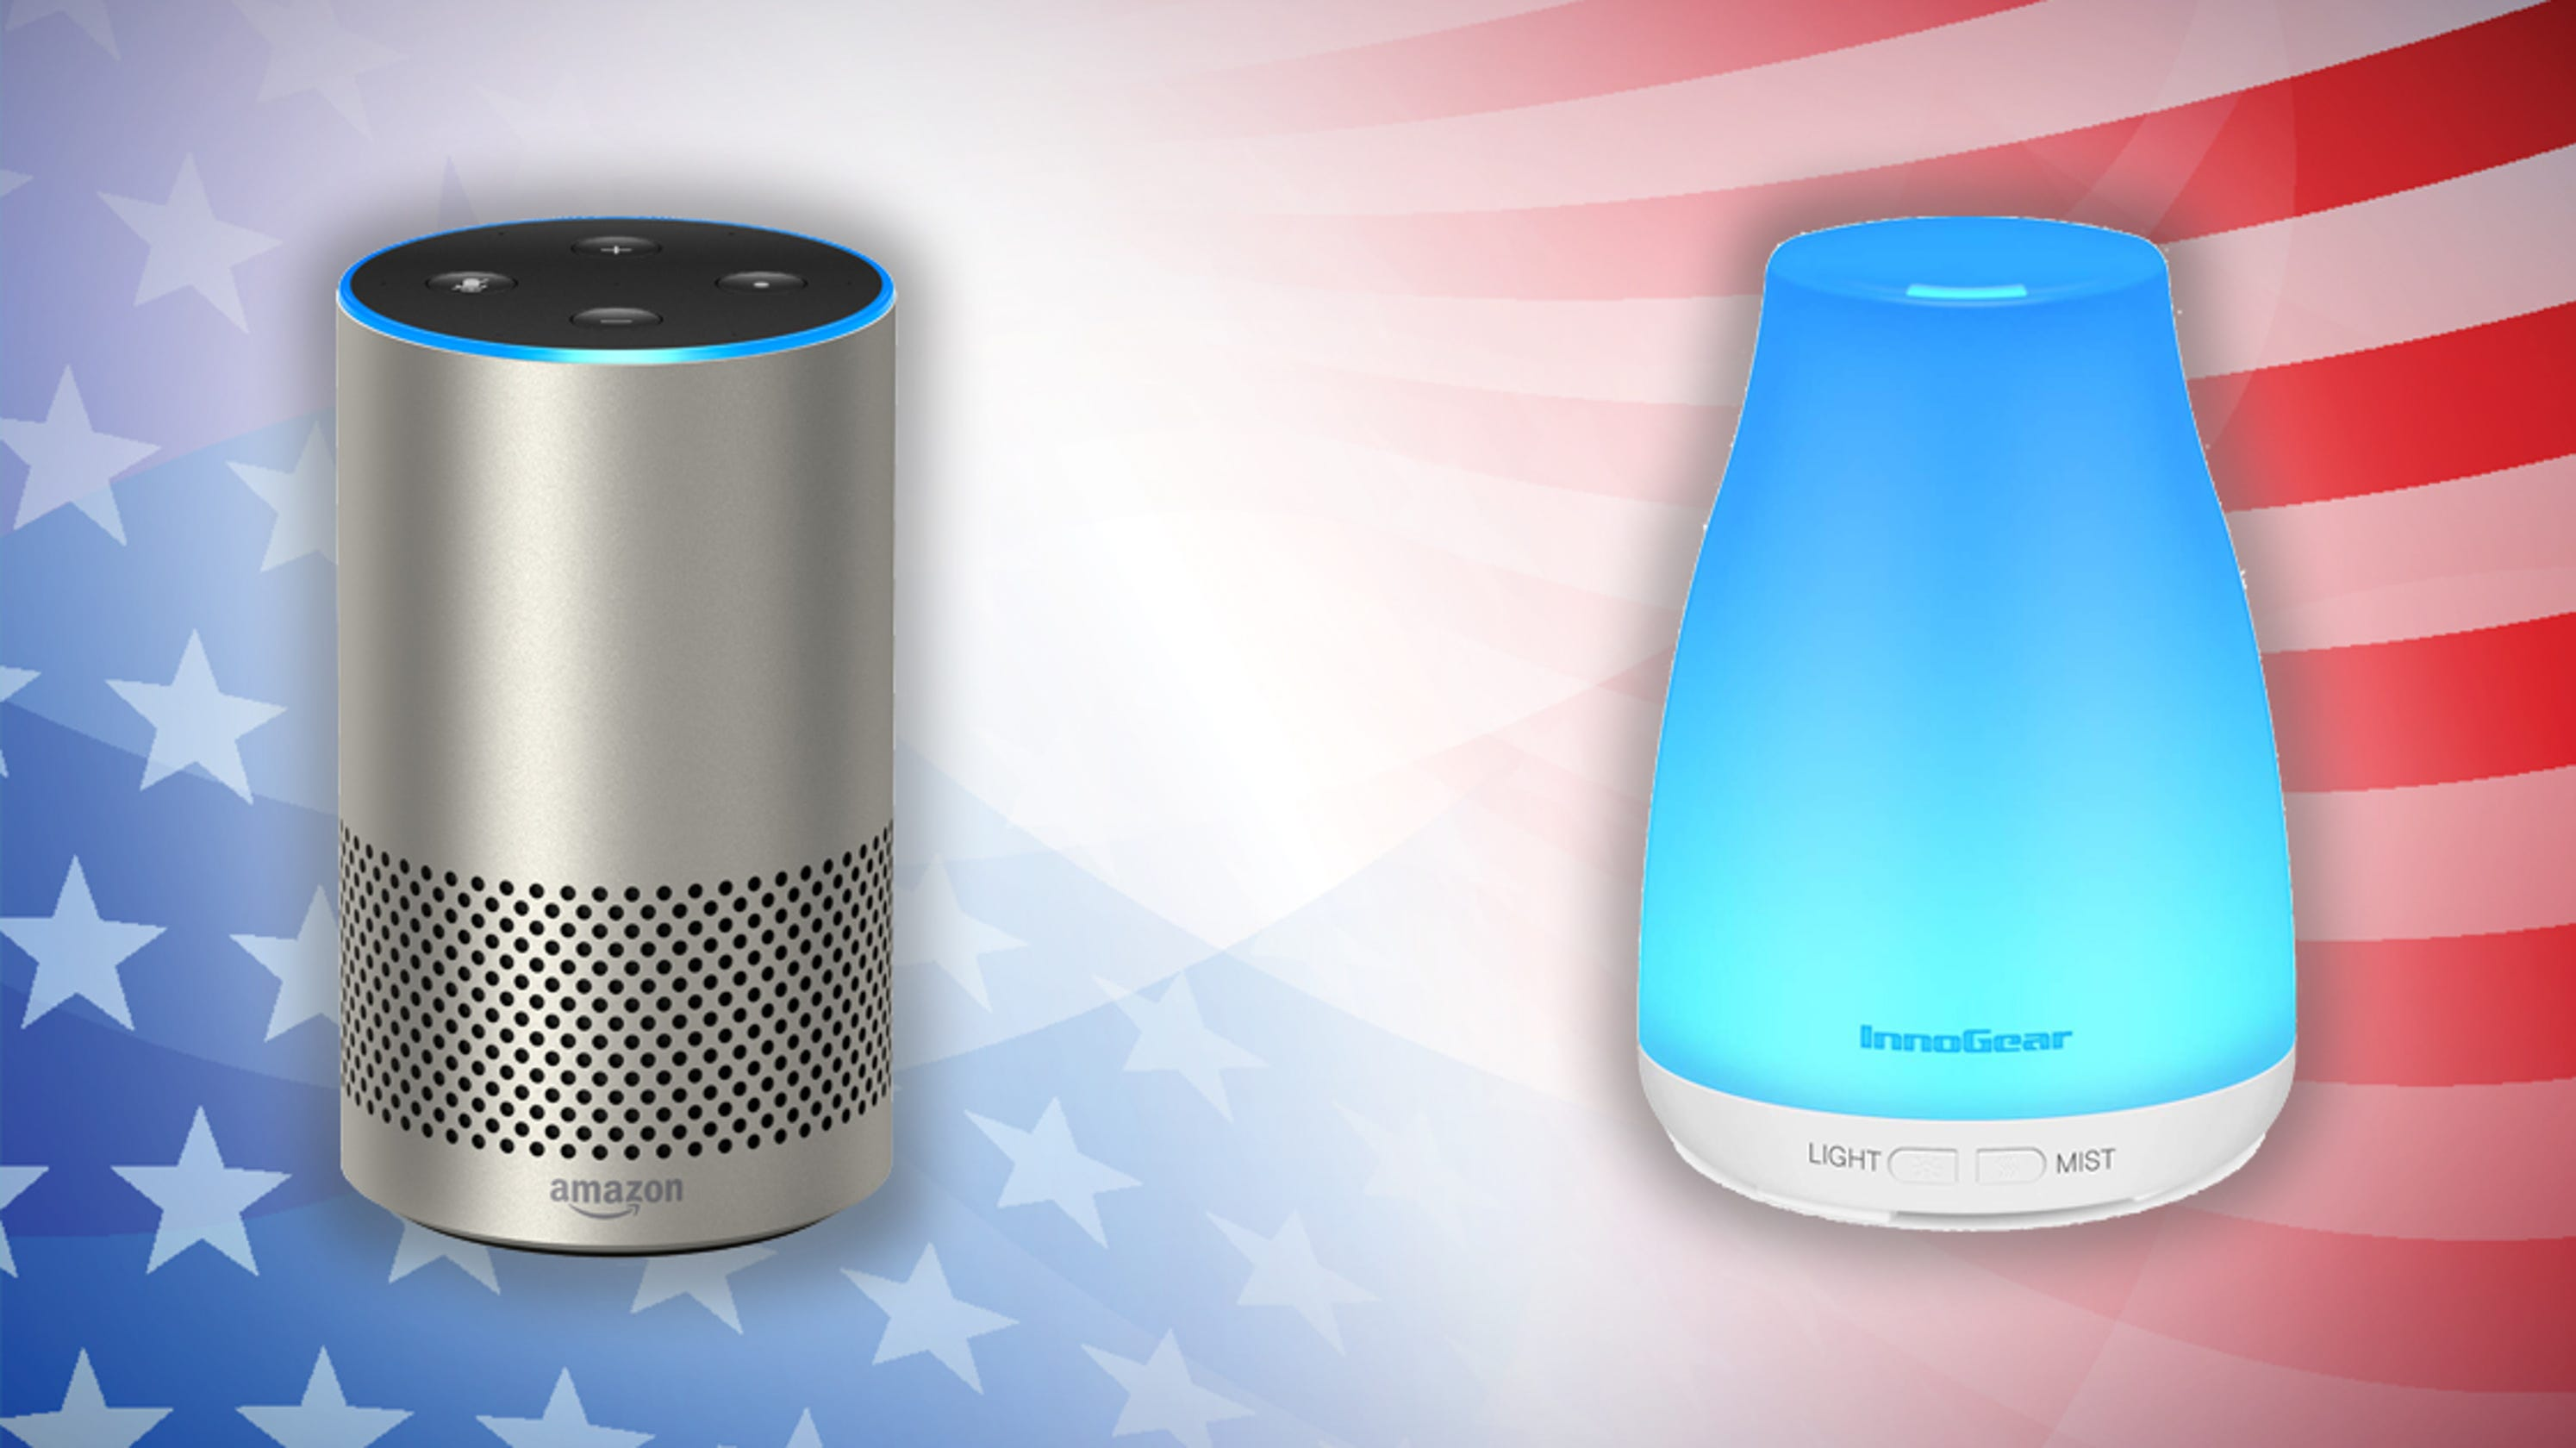 The best Fourth of July deals and sales you can get right now